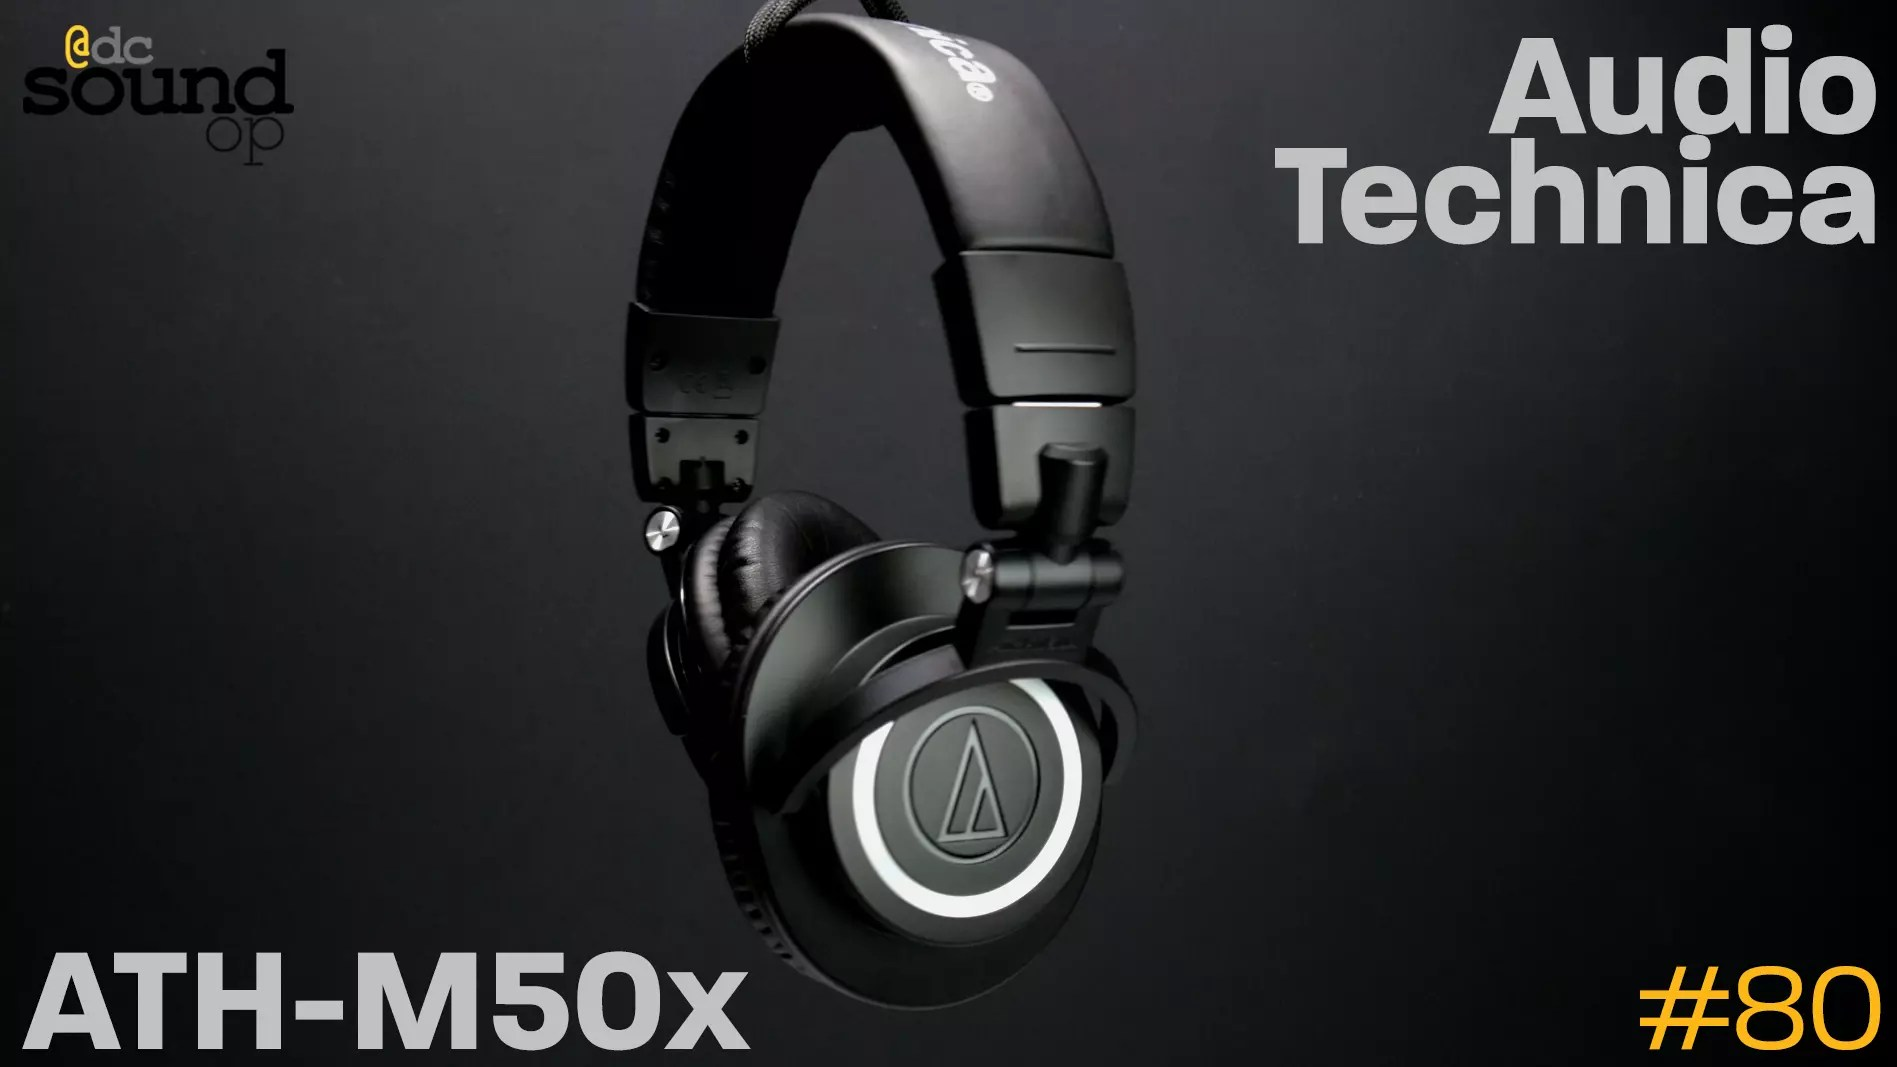 #80 – Audio Technica ATH-M50x First Look Review